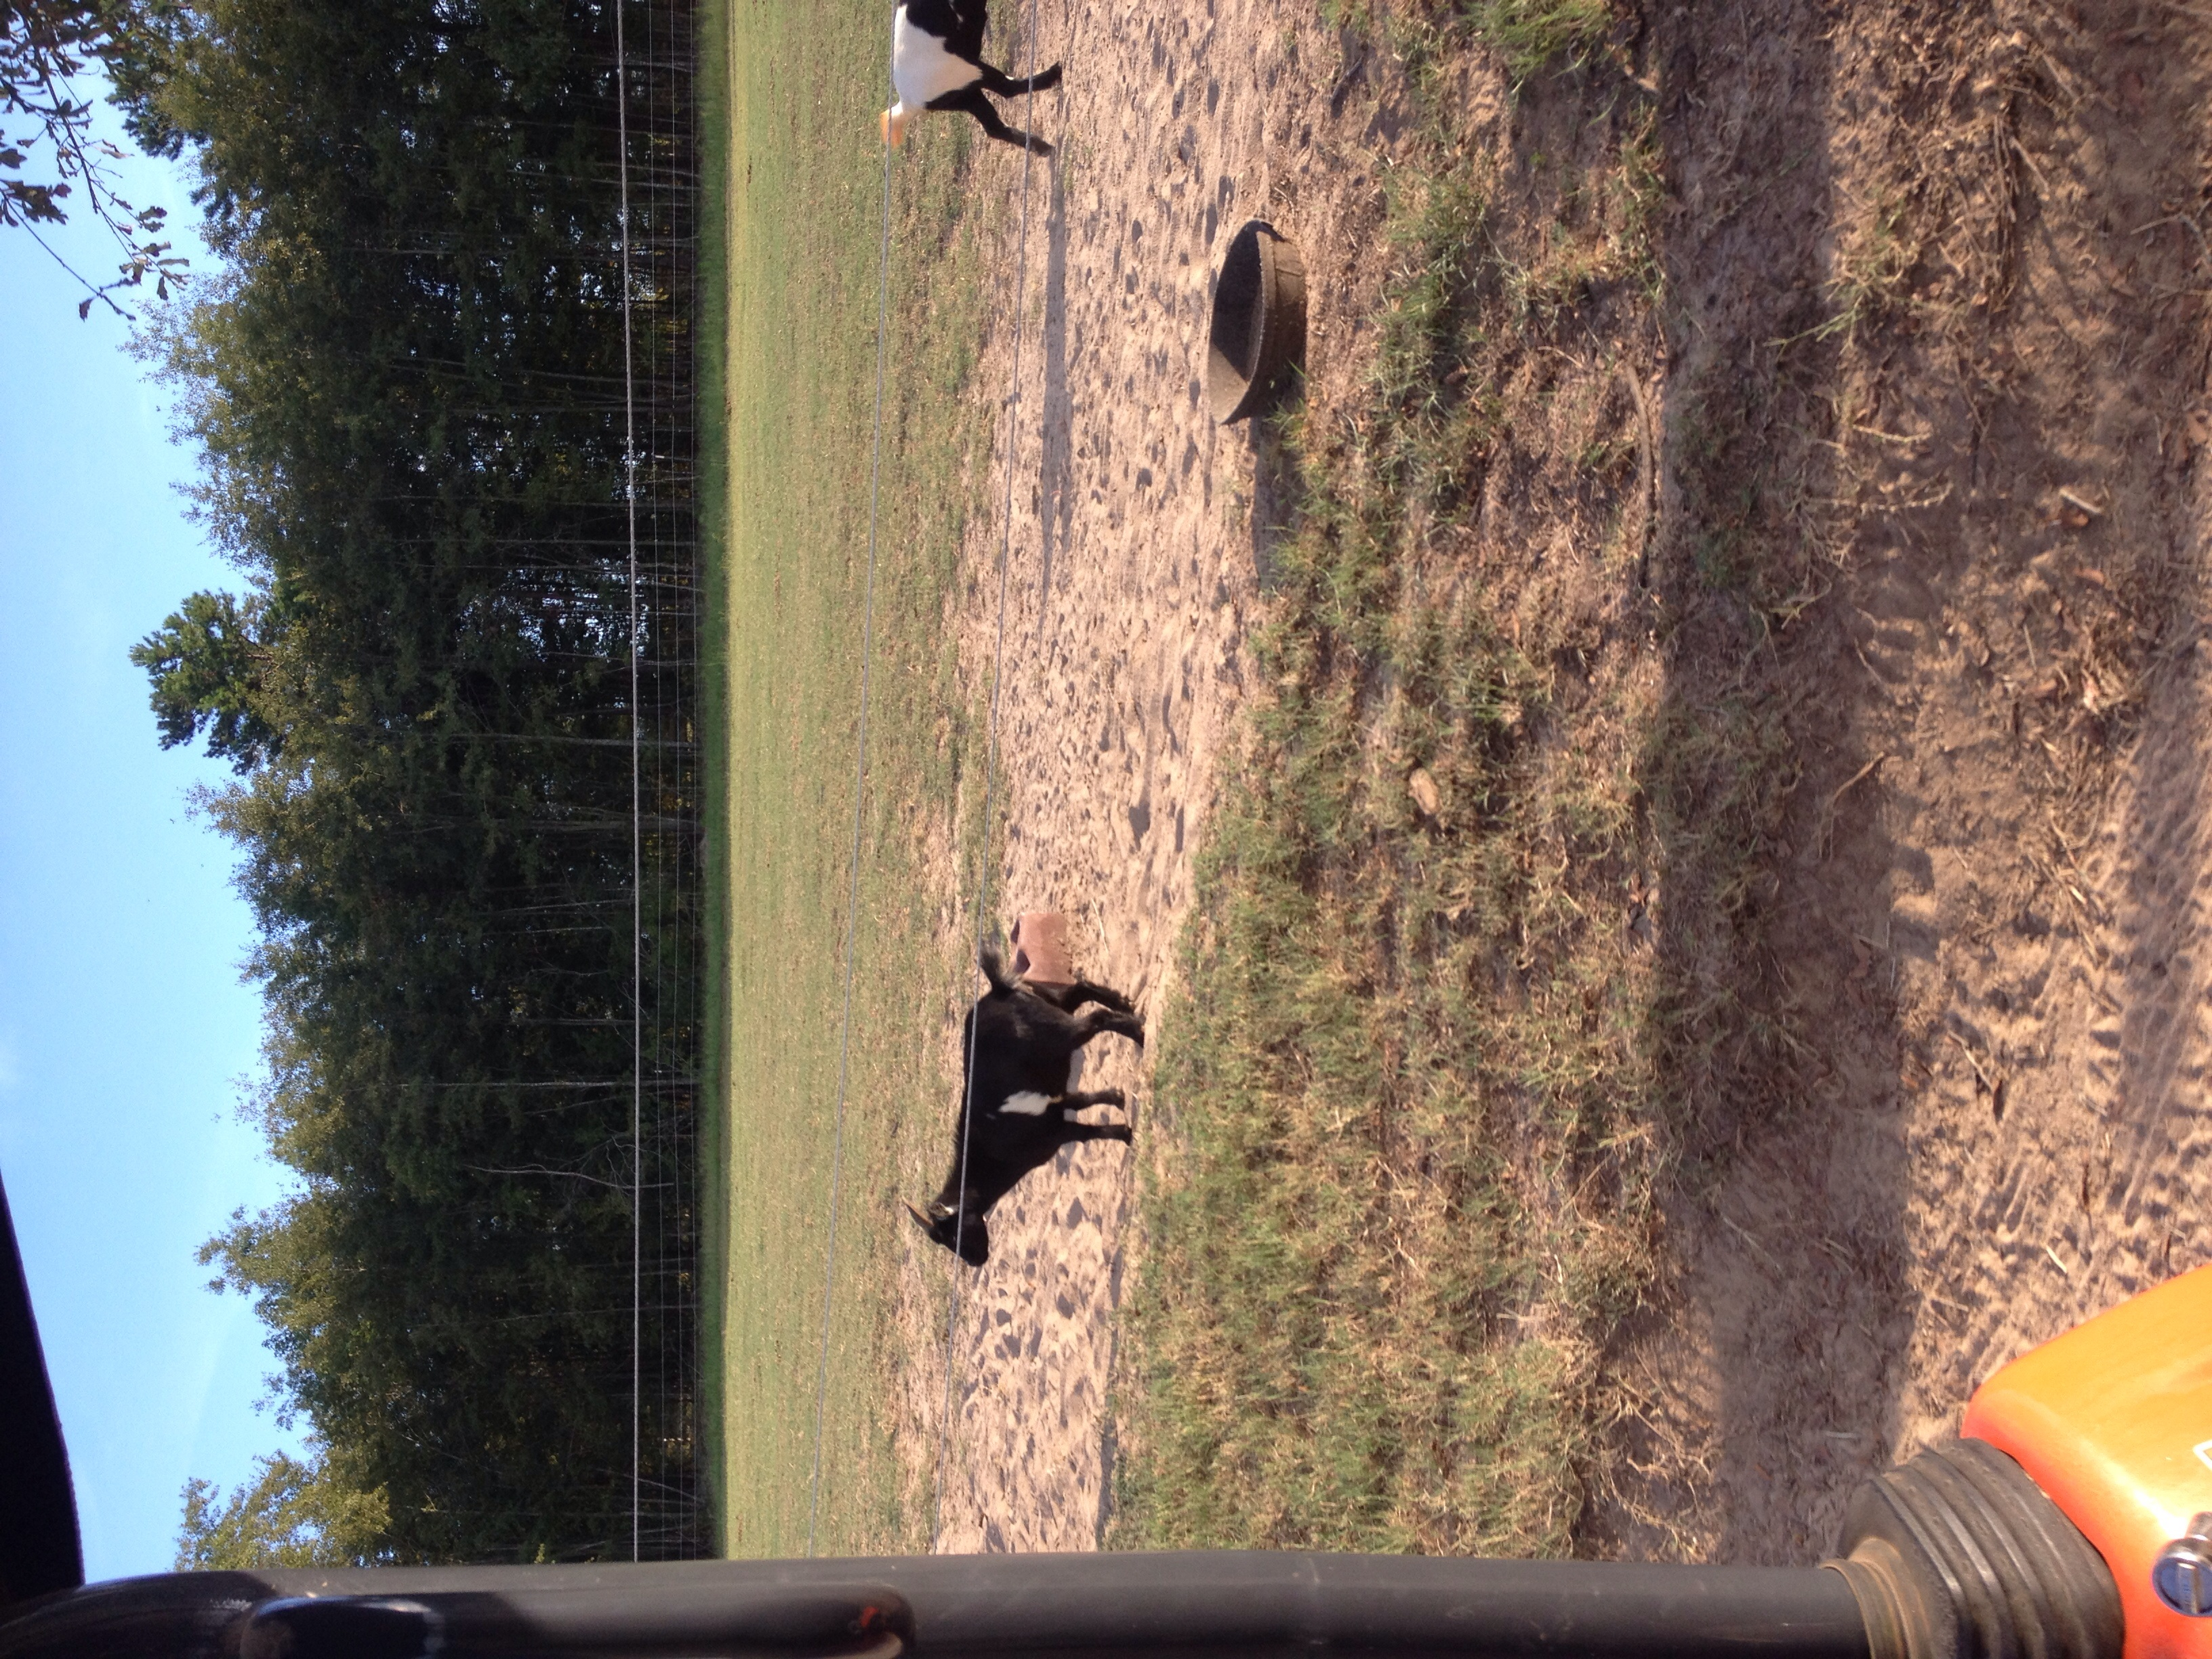 In addition to horses, Royal Palm Farm is home to a small herd of goats that entertain us with their antics.